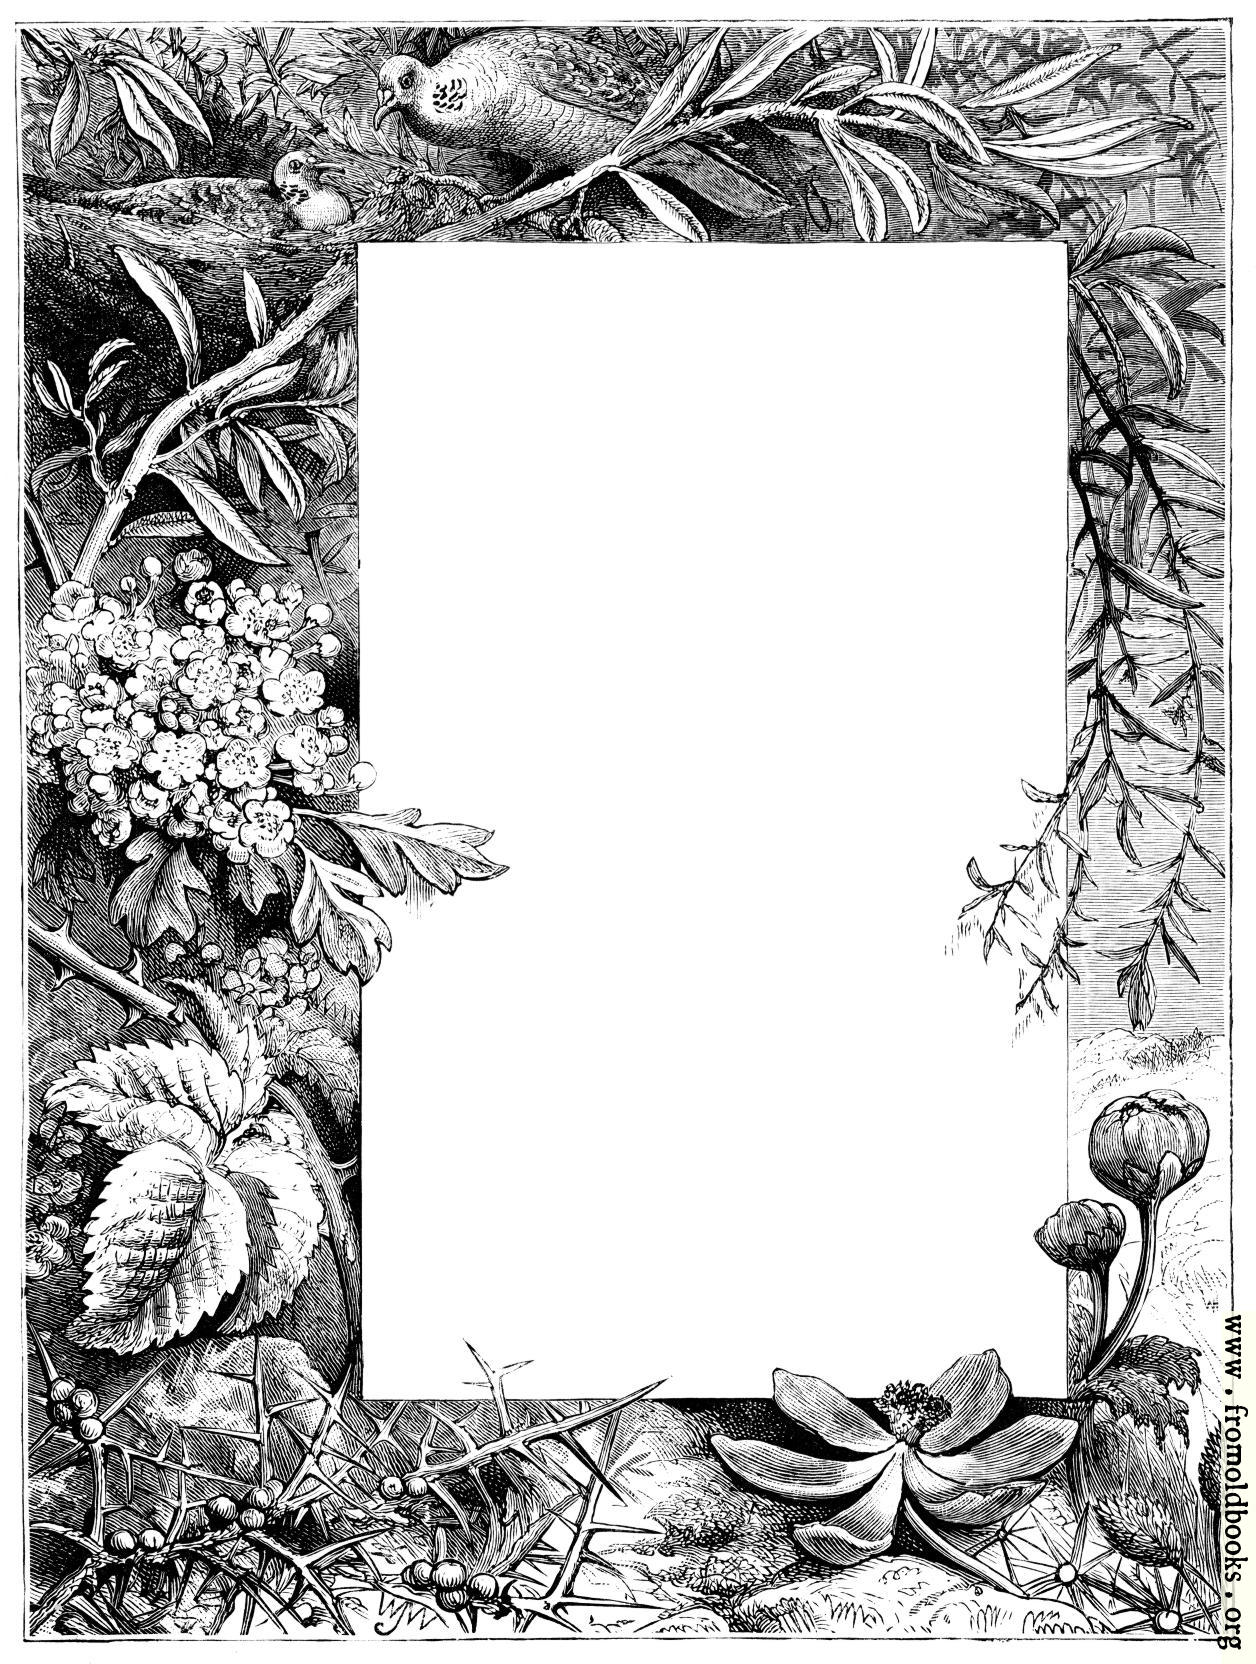 [Picture: Irregular border of flowers, birds and nature]